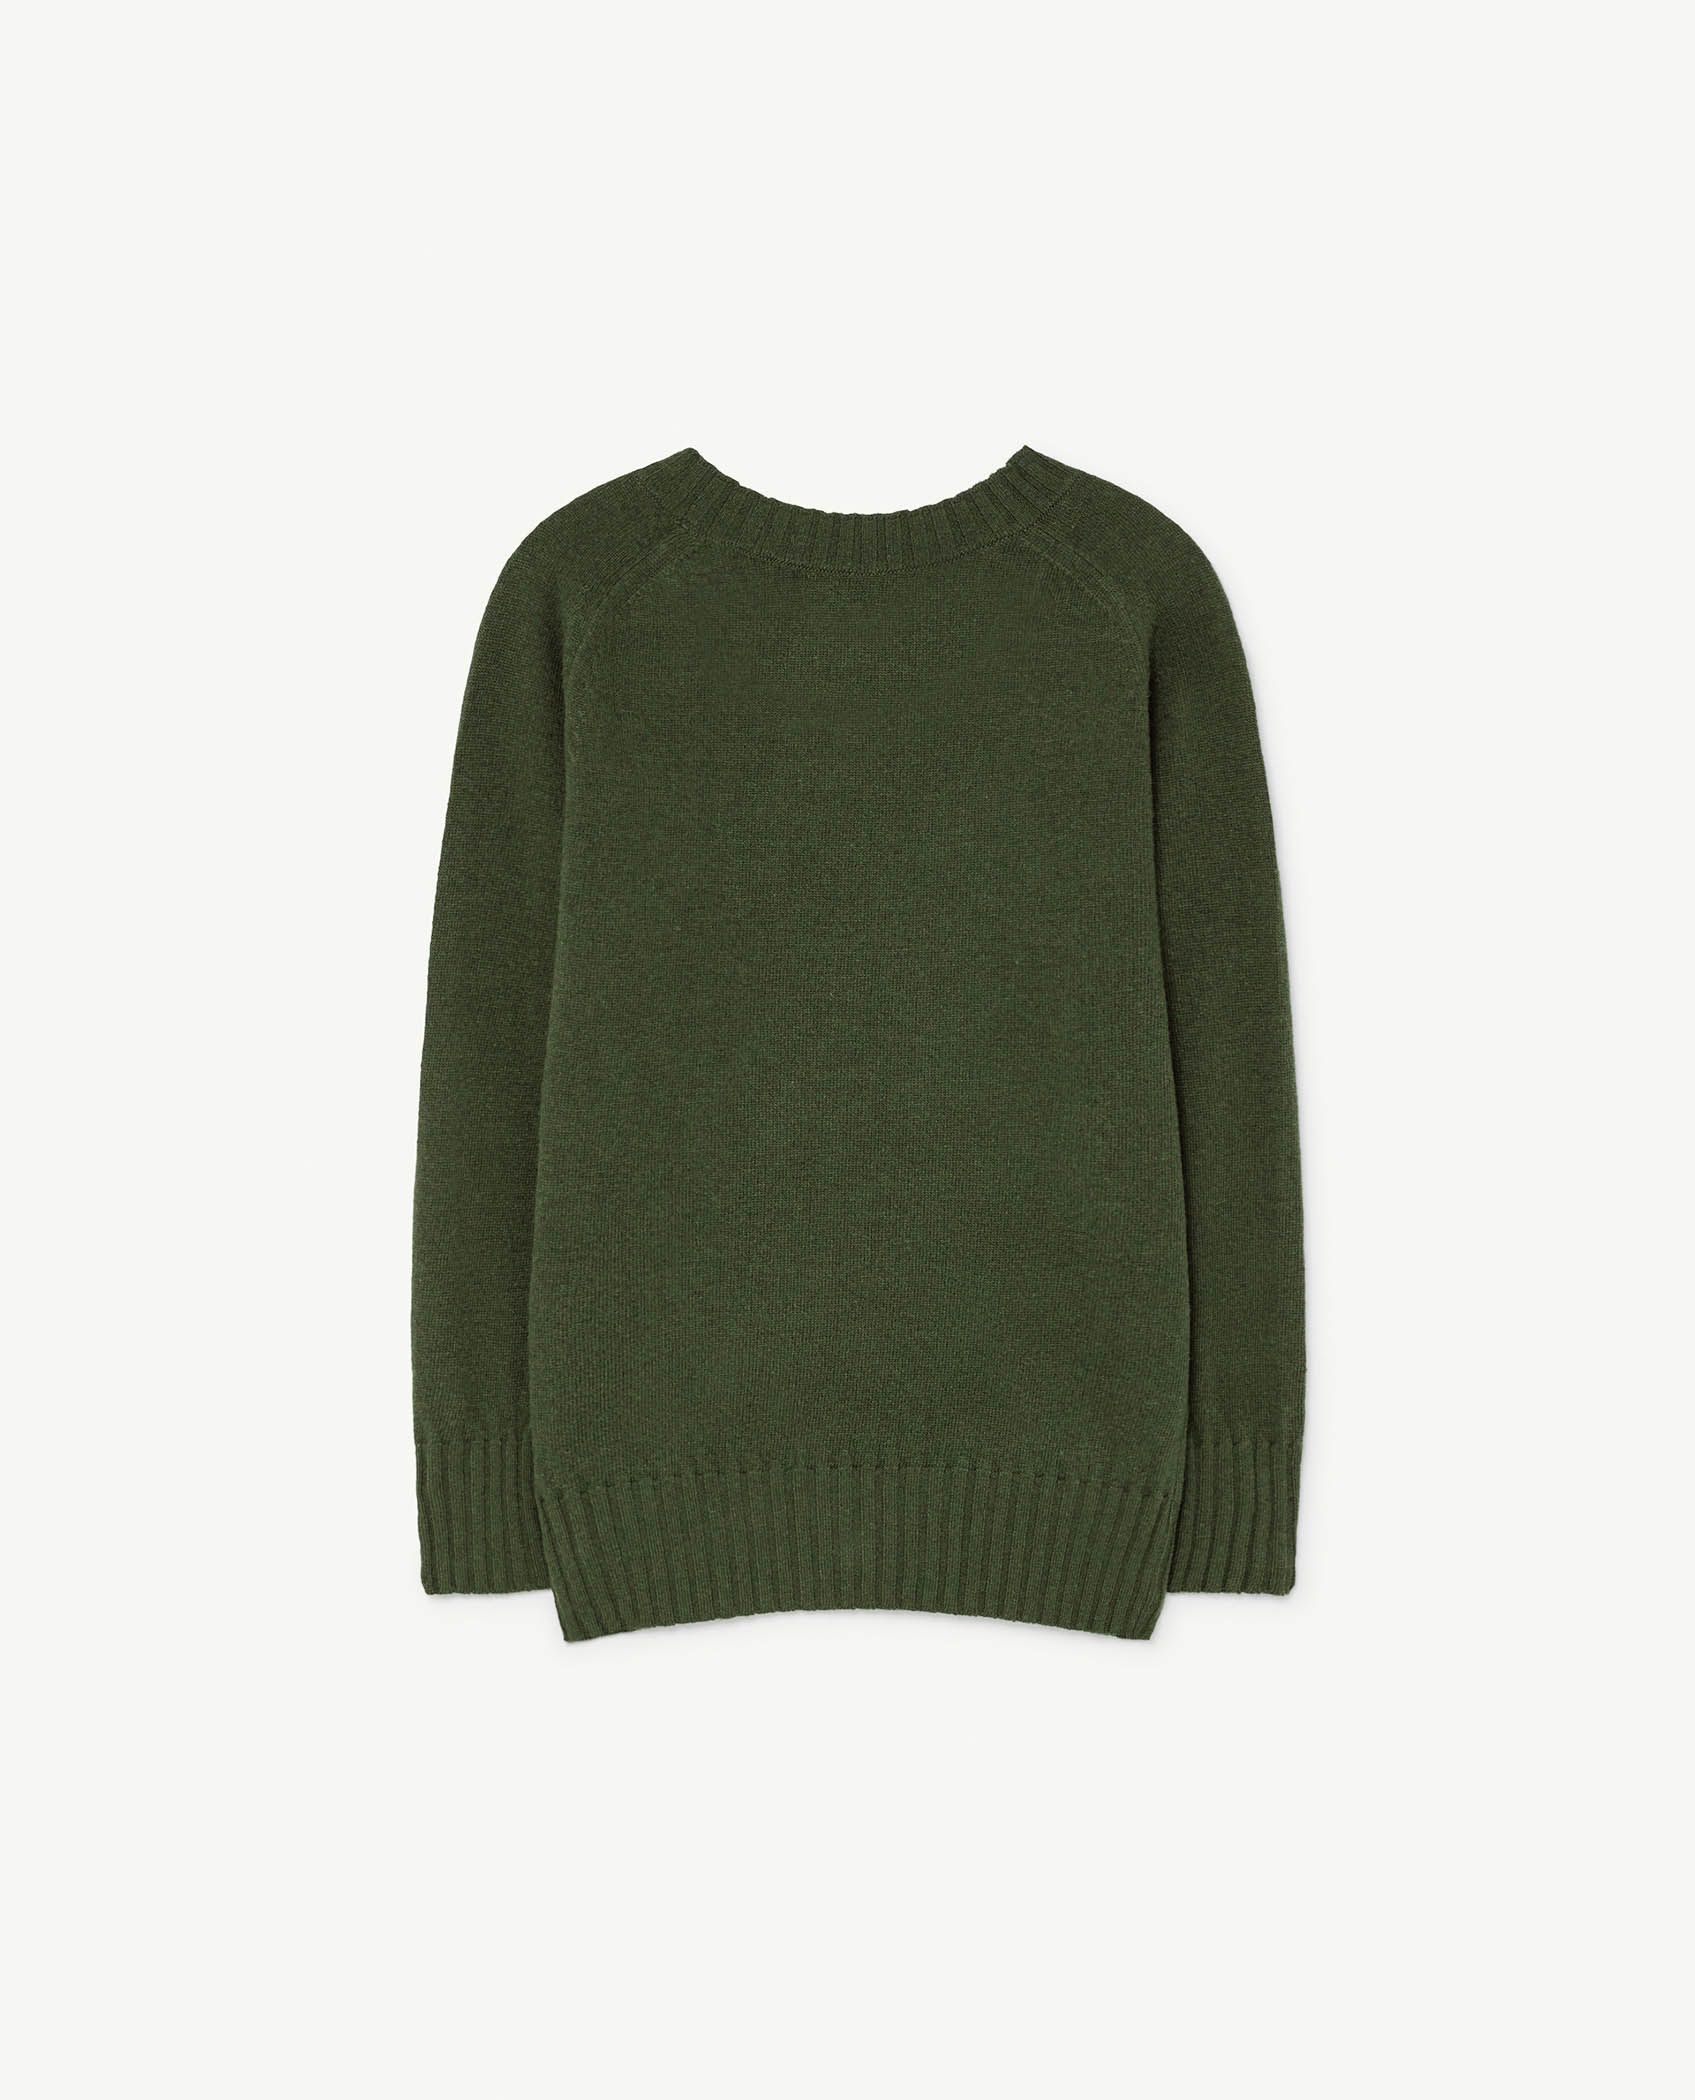 Green Sardine Sweater img-2